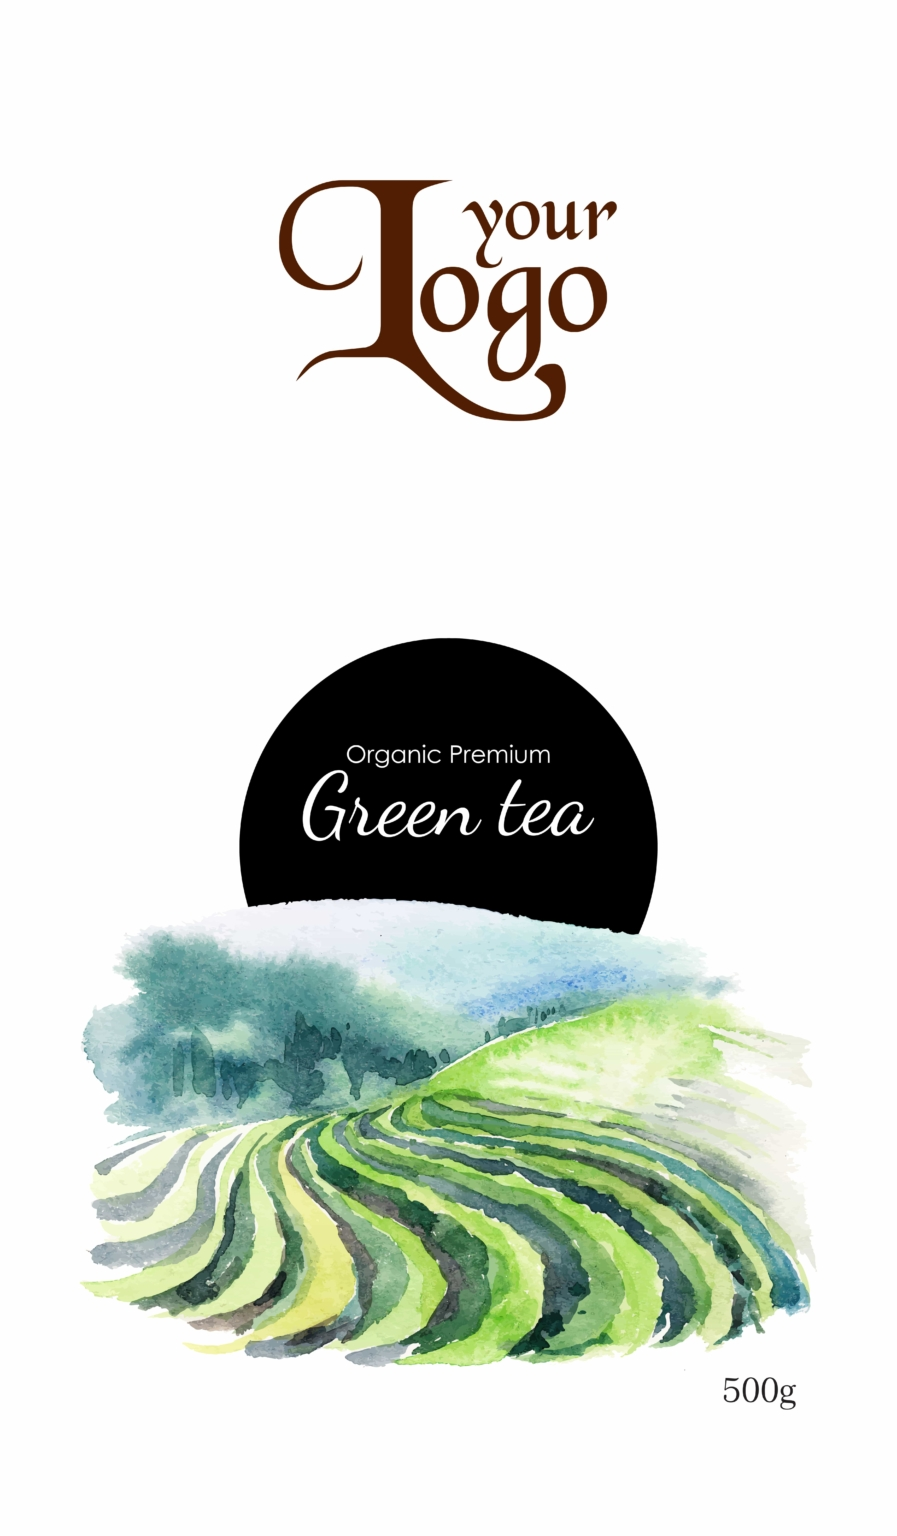 green tea2 03 - Tea Packet One